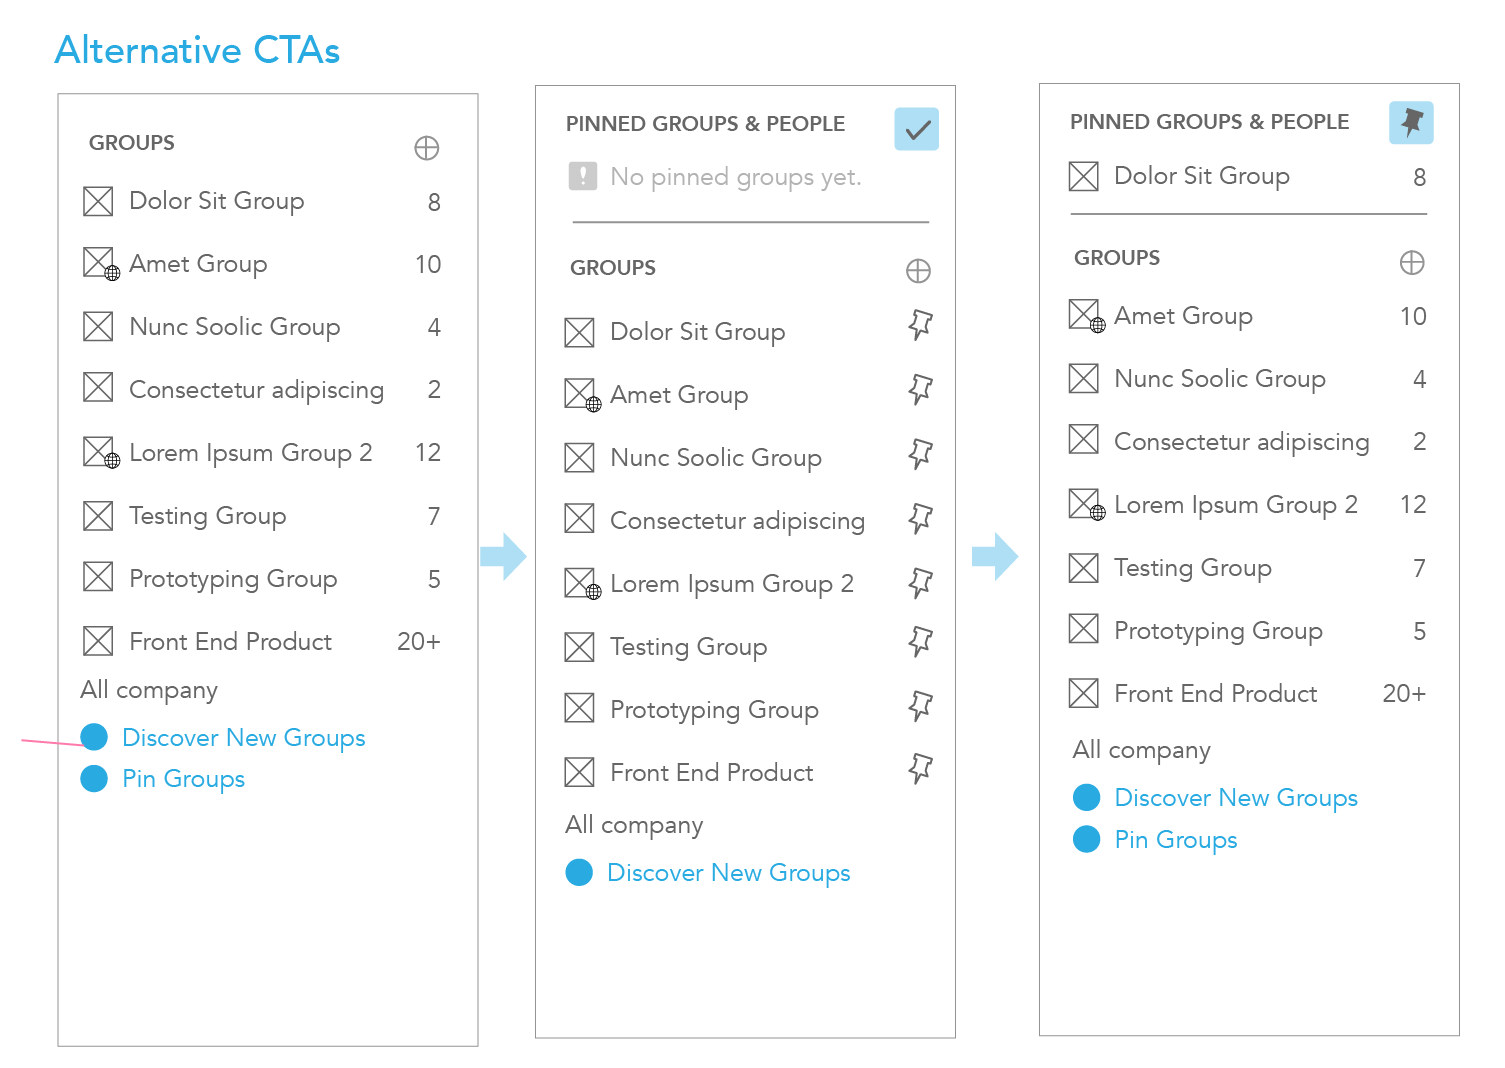 group-reordering-12.png